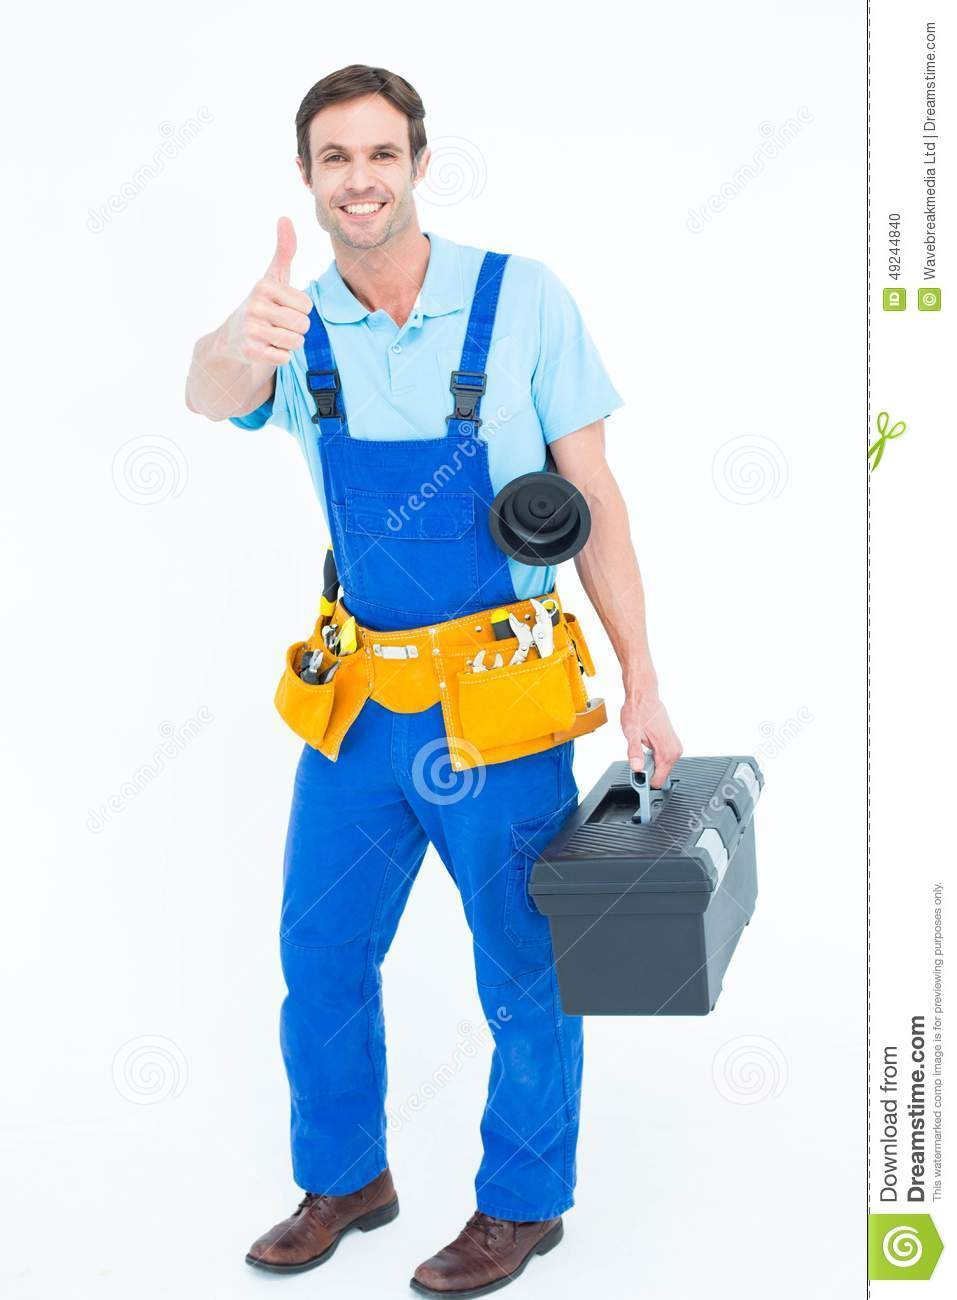 Plumber Carrying Tool Box While Gesturing Thumbs Up Stock ...